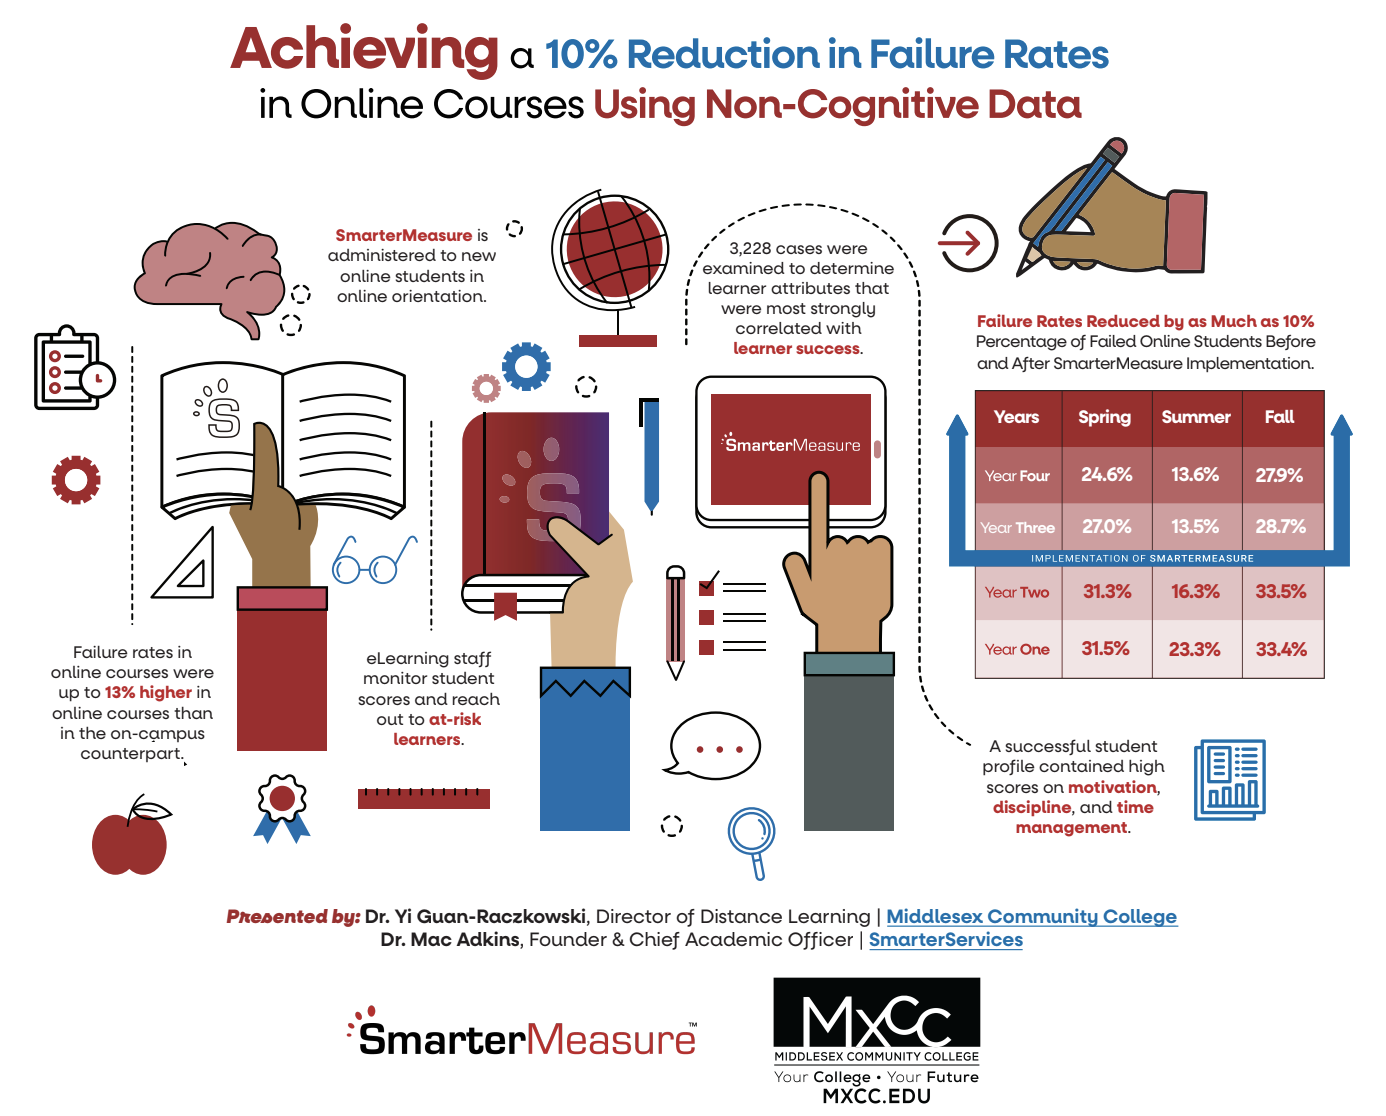 Presentation data on how to achieve a 10% reduction in failure rates